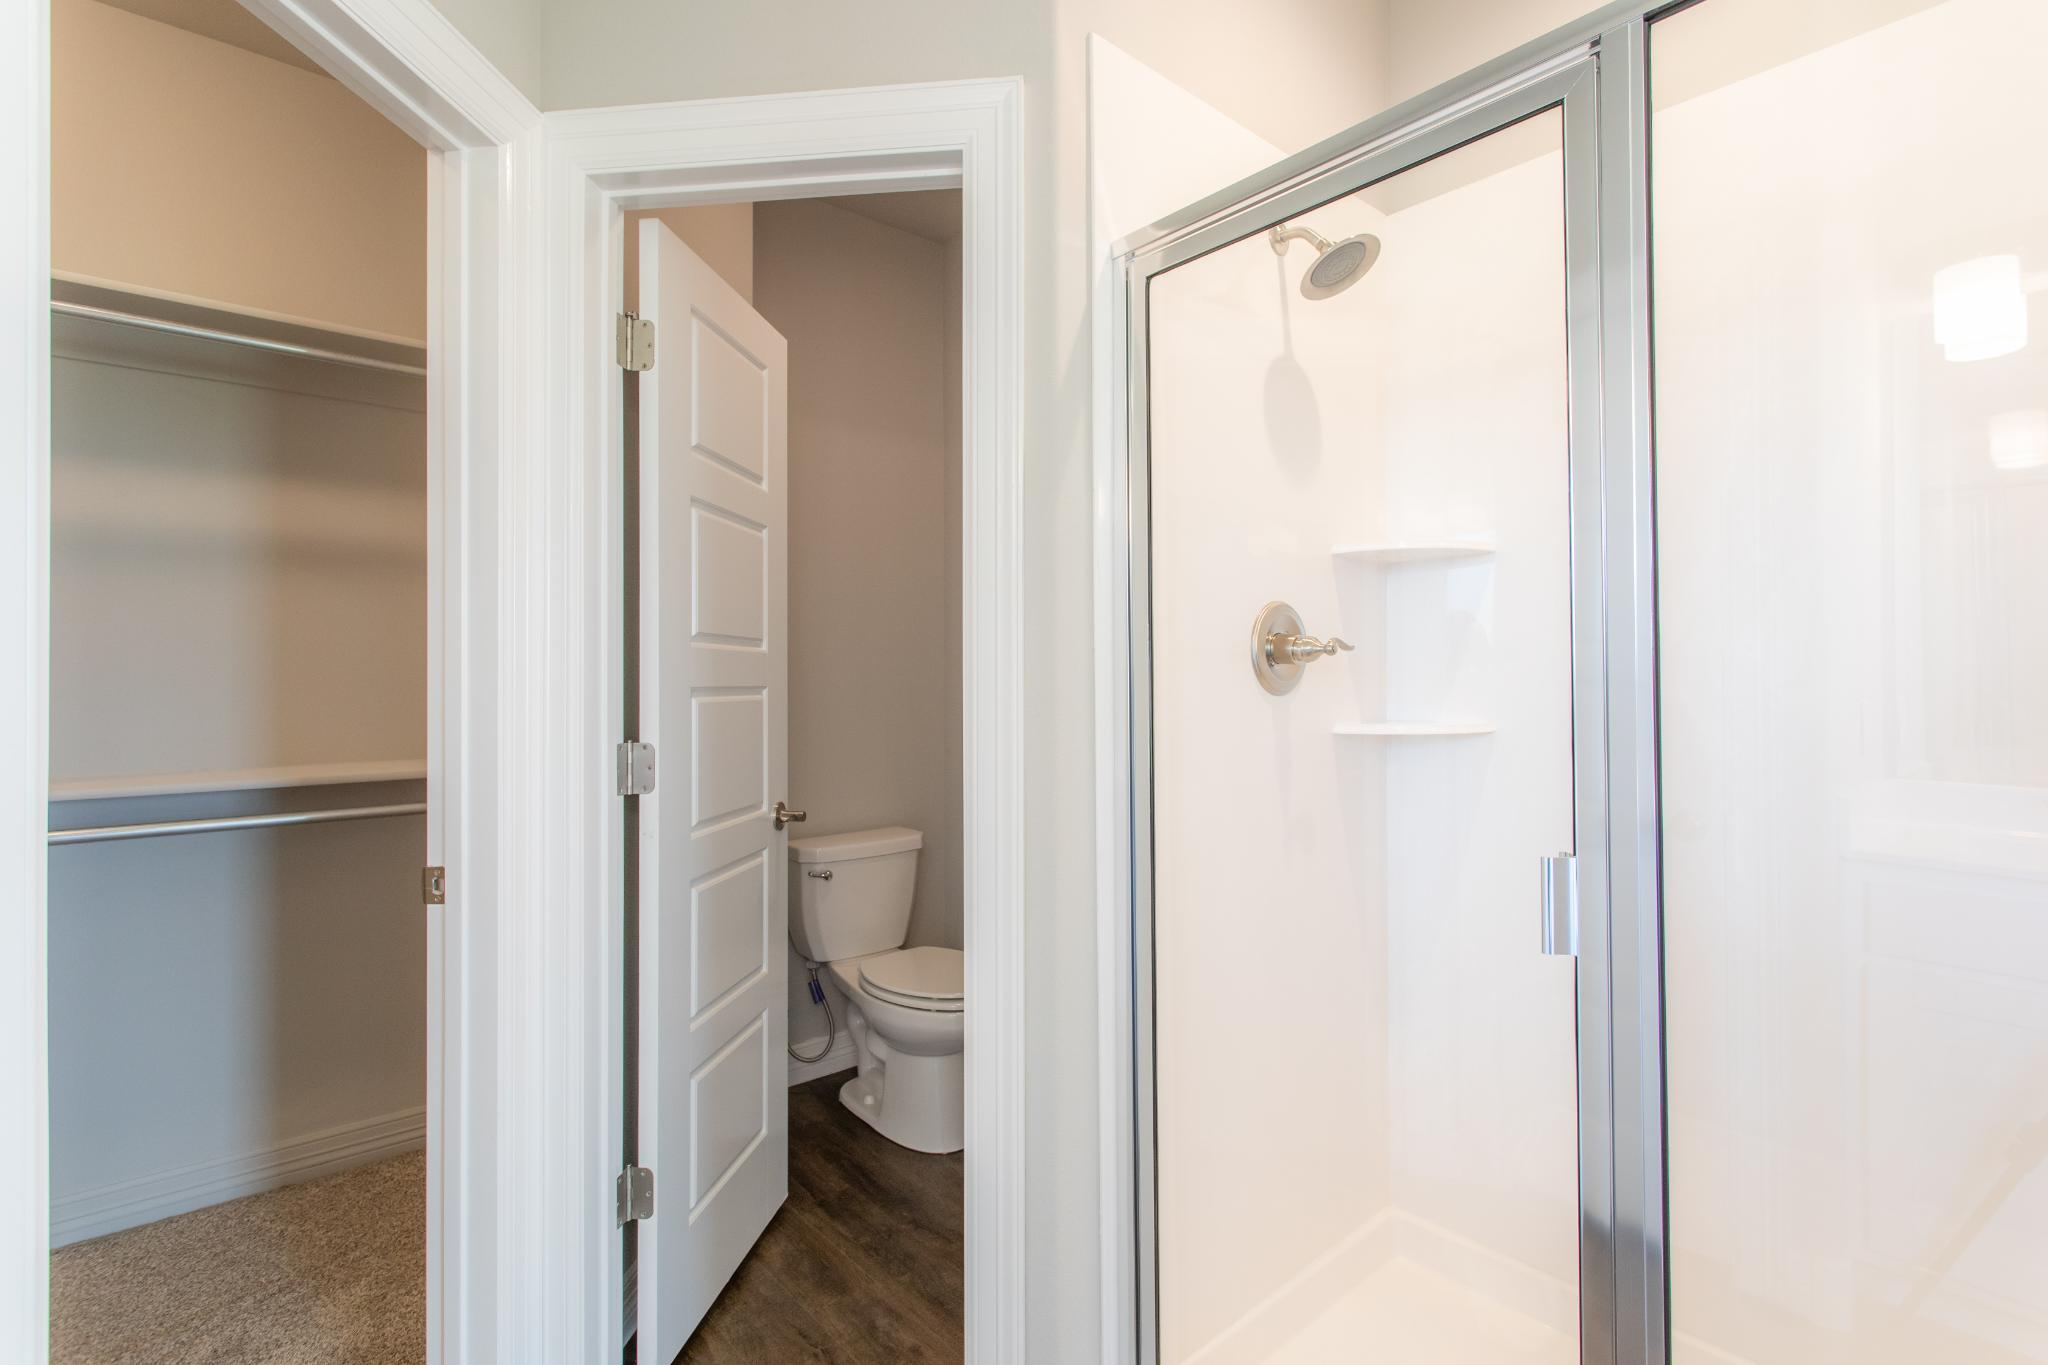 Bathroom featured in the Columbus By Capital Homes in Tulsa, OK